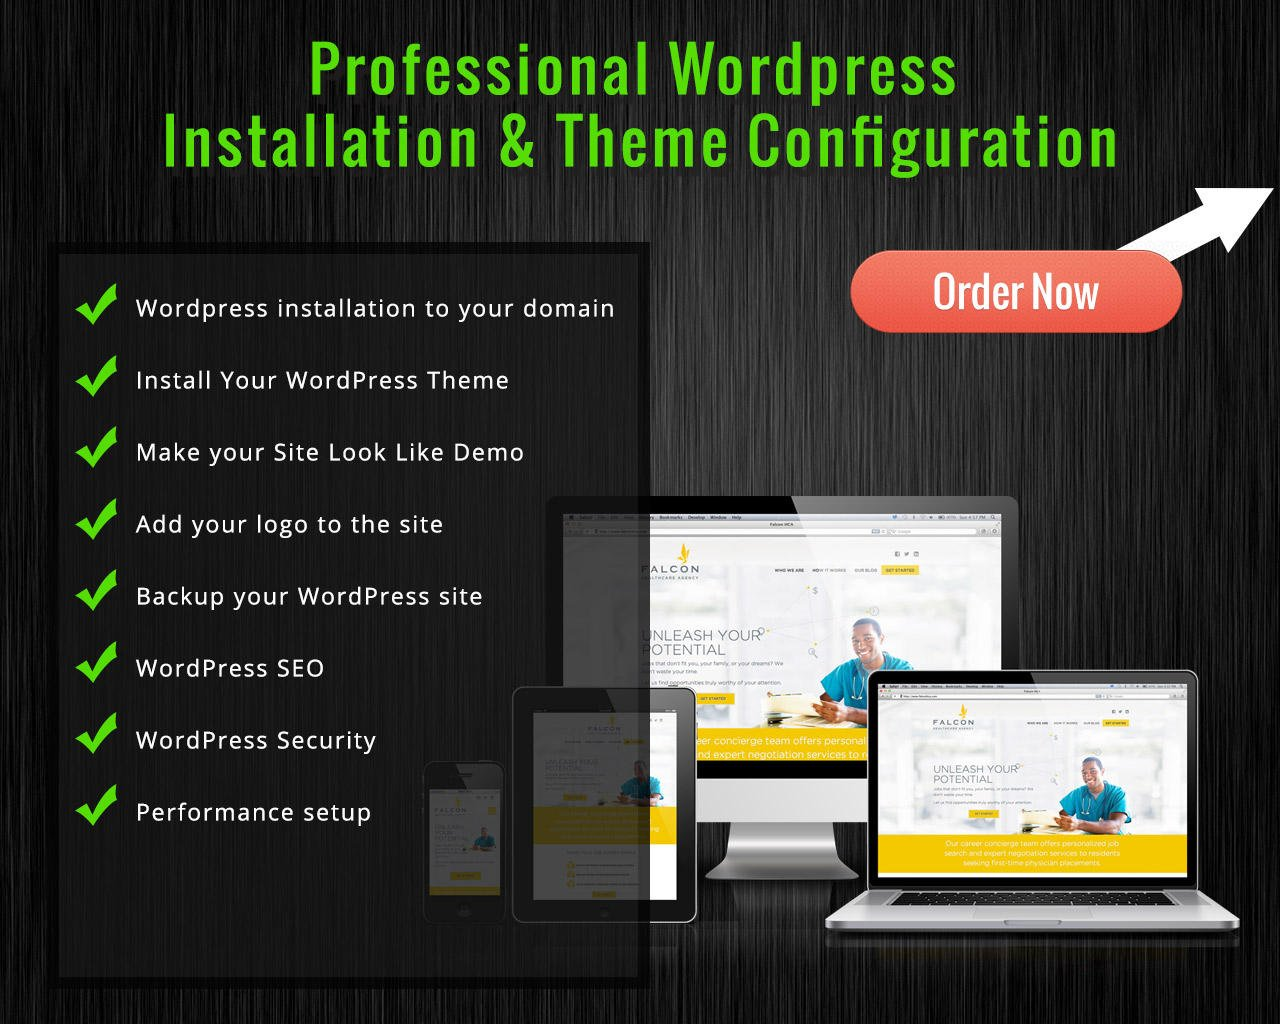 WordPress Theme Installation (Incl. Demo Content, Logo, Plugins, Shop Set-up) by designsvalley - 98513